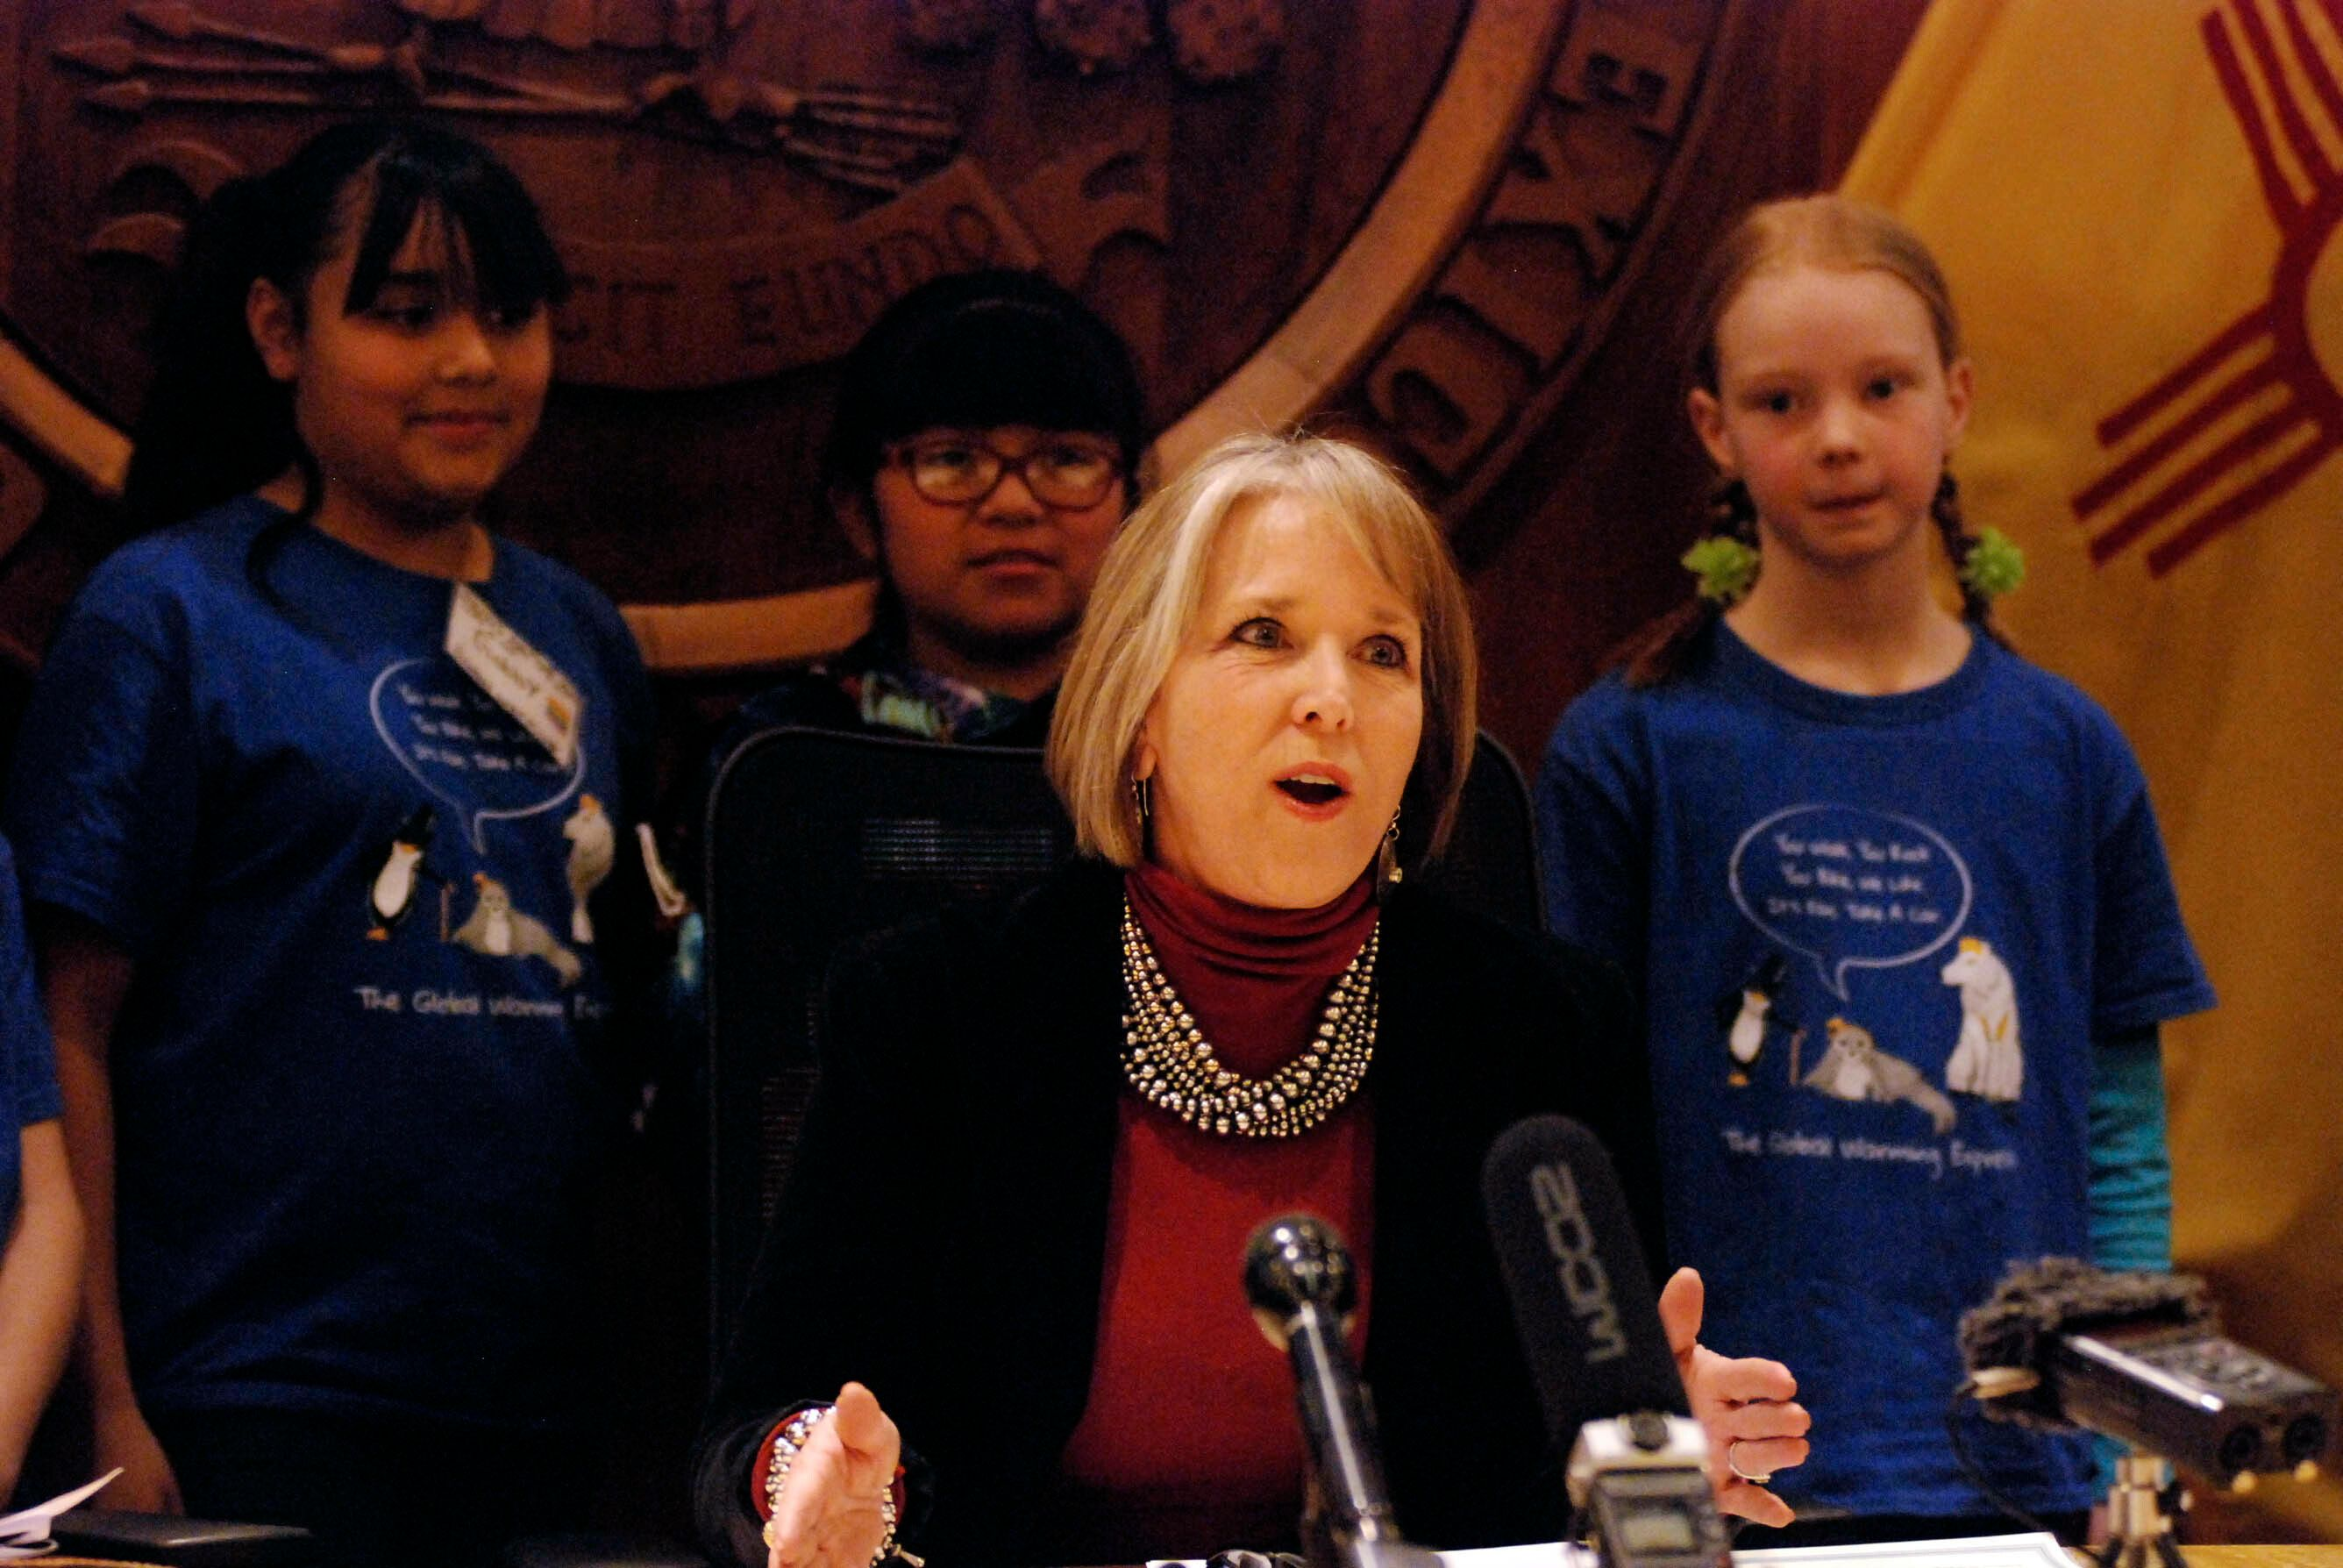 New Mexico Gov. Michelle Lujan Grisham, center, signs an executive order for state agencies to aggressive pursue strategies to reduce greenhouse gas emissions on Tuesday, Jan. 29, 2019, in Santa Fe, N.M. flanked by student activists on global warming issues. The order endorses goals of the 2015 Paris climate agreement to limit global warming and sets in motion new efforts to encourage renewable energy development, improve energy efficiency for buildings, safeguard air quality and possibly set new vehicle emission standards. (AP Photo/Morgan Lee)